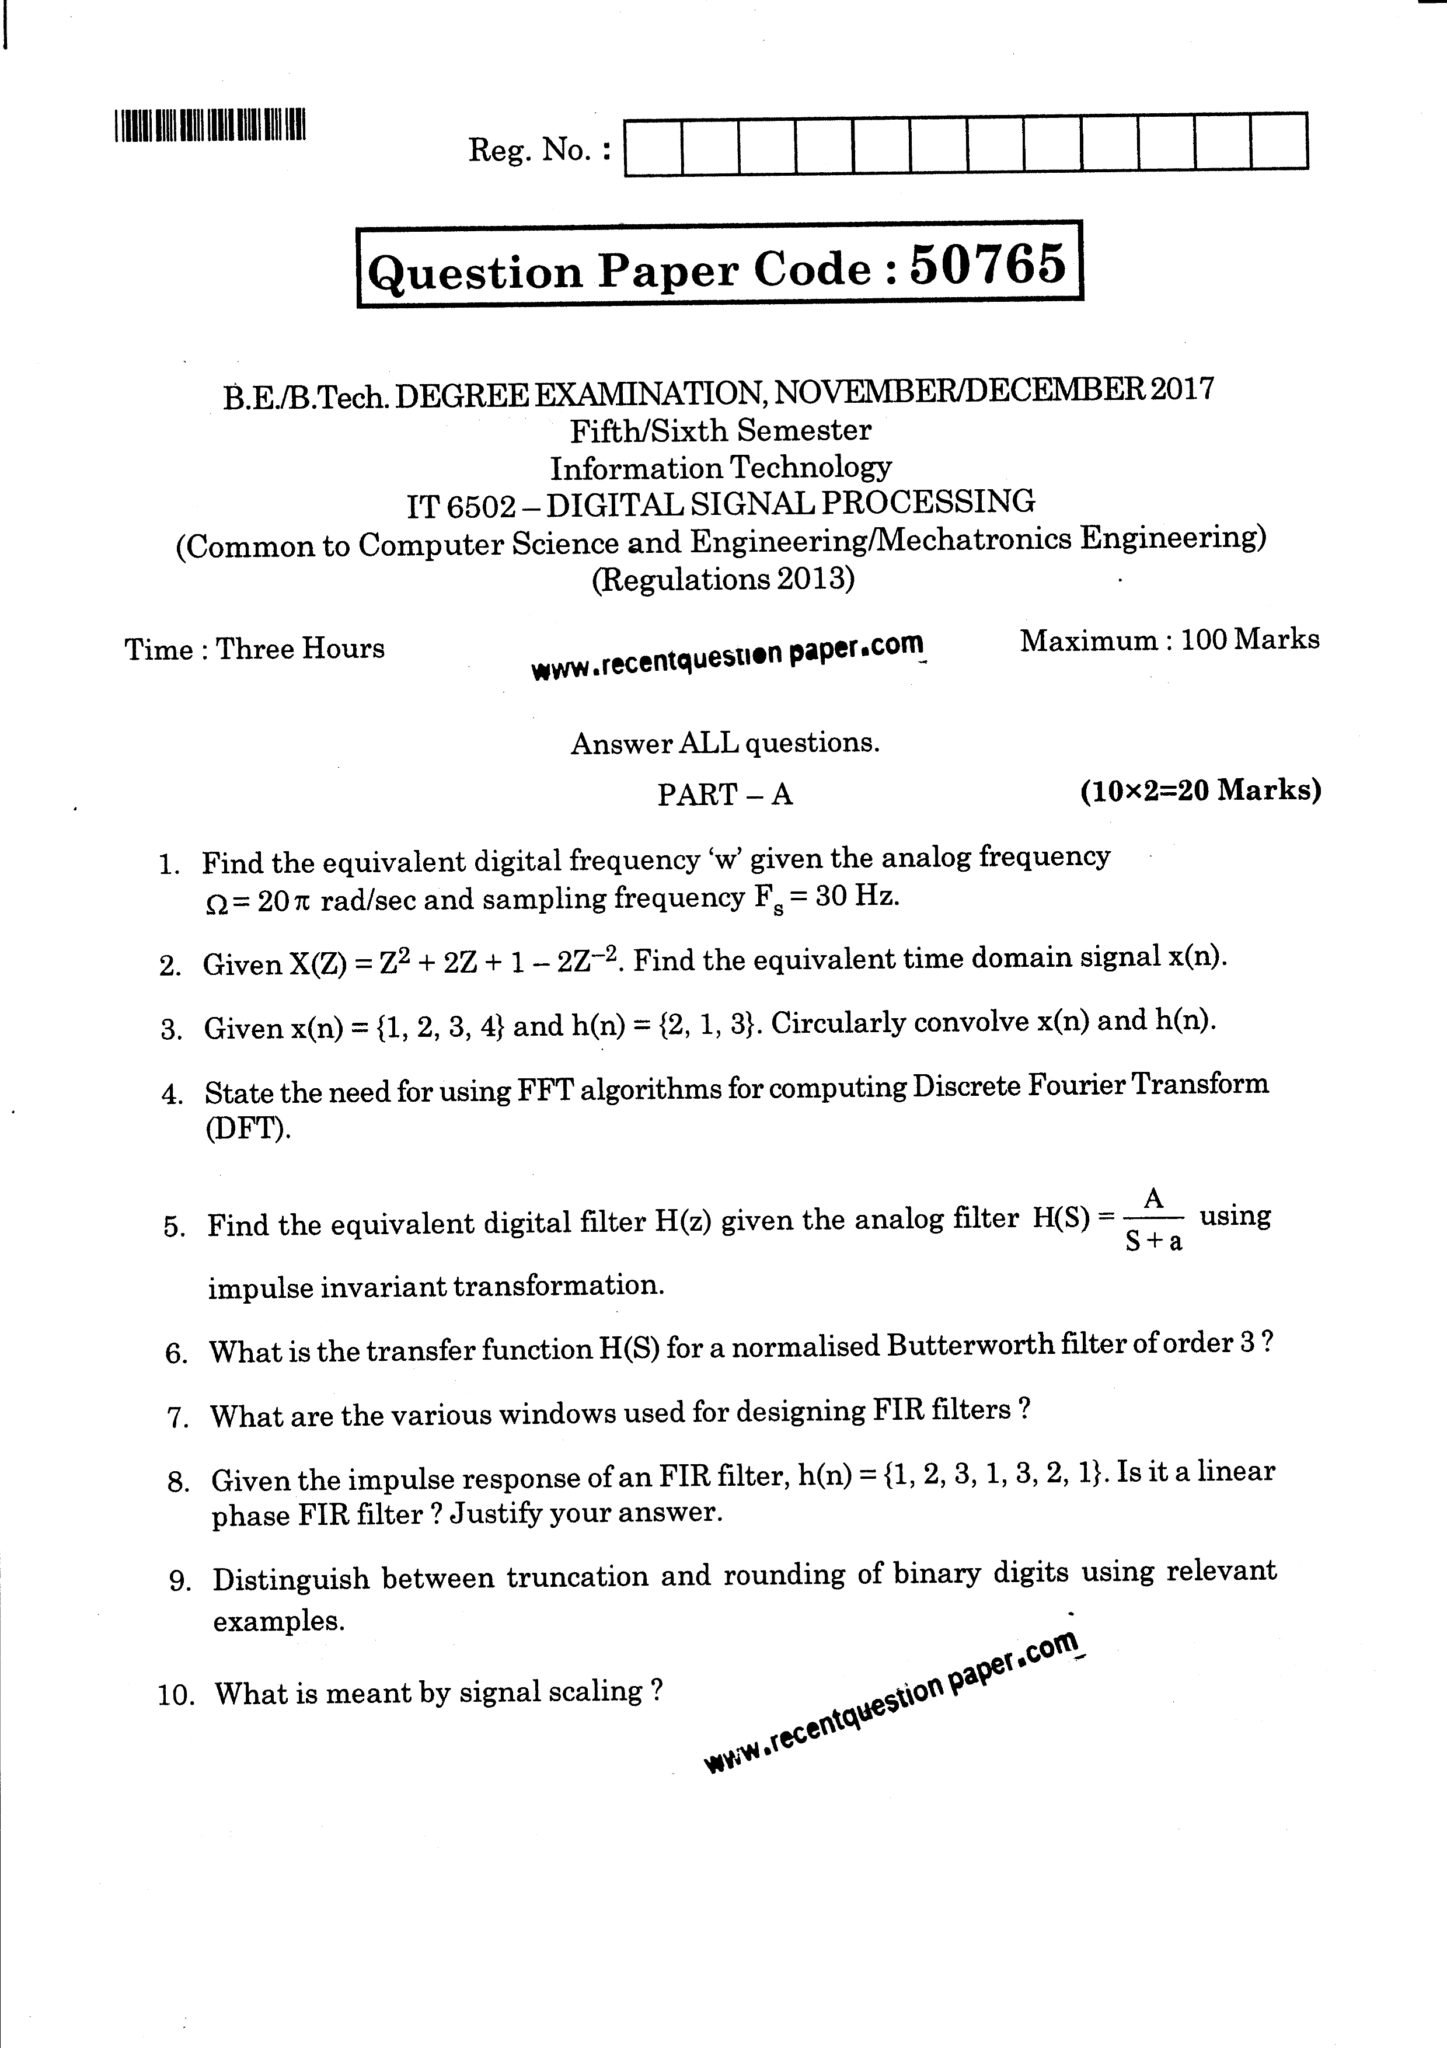 IT6502 Digital Signal Processing Question Paper Nov/Dec 2017